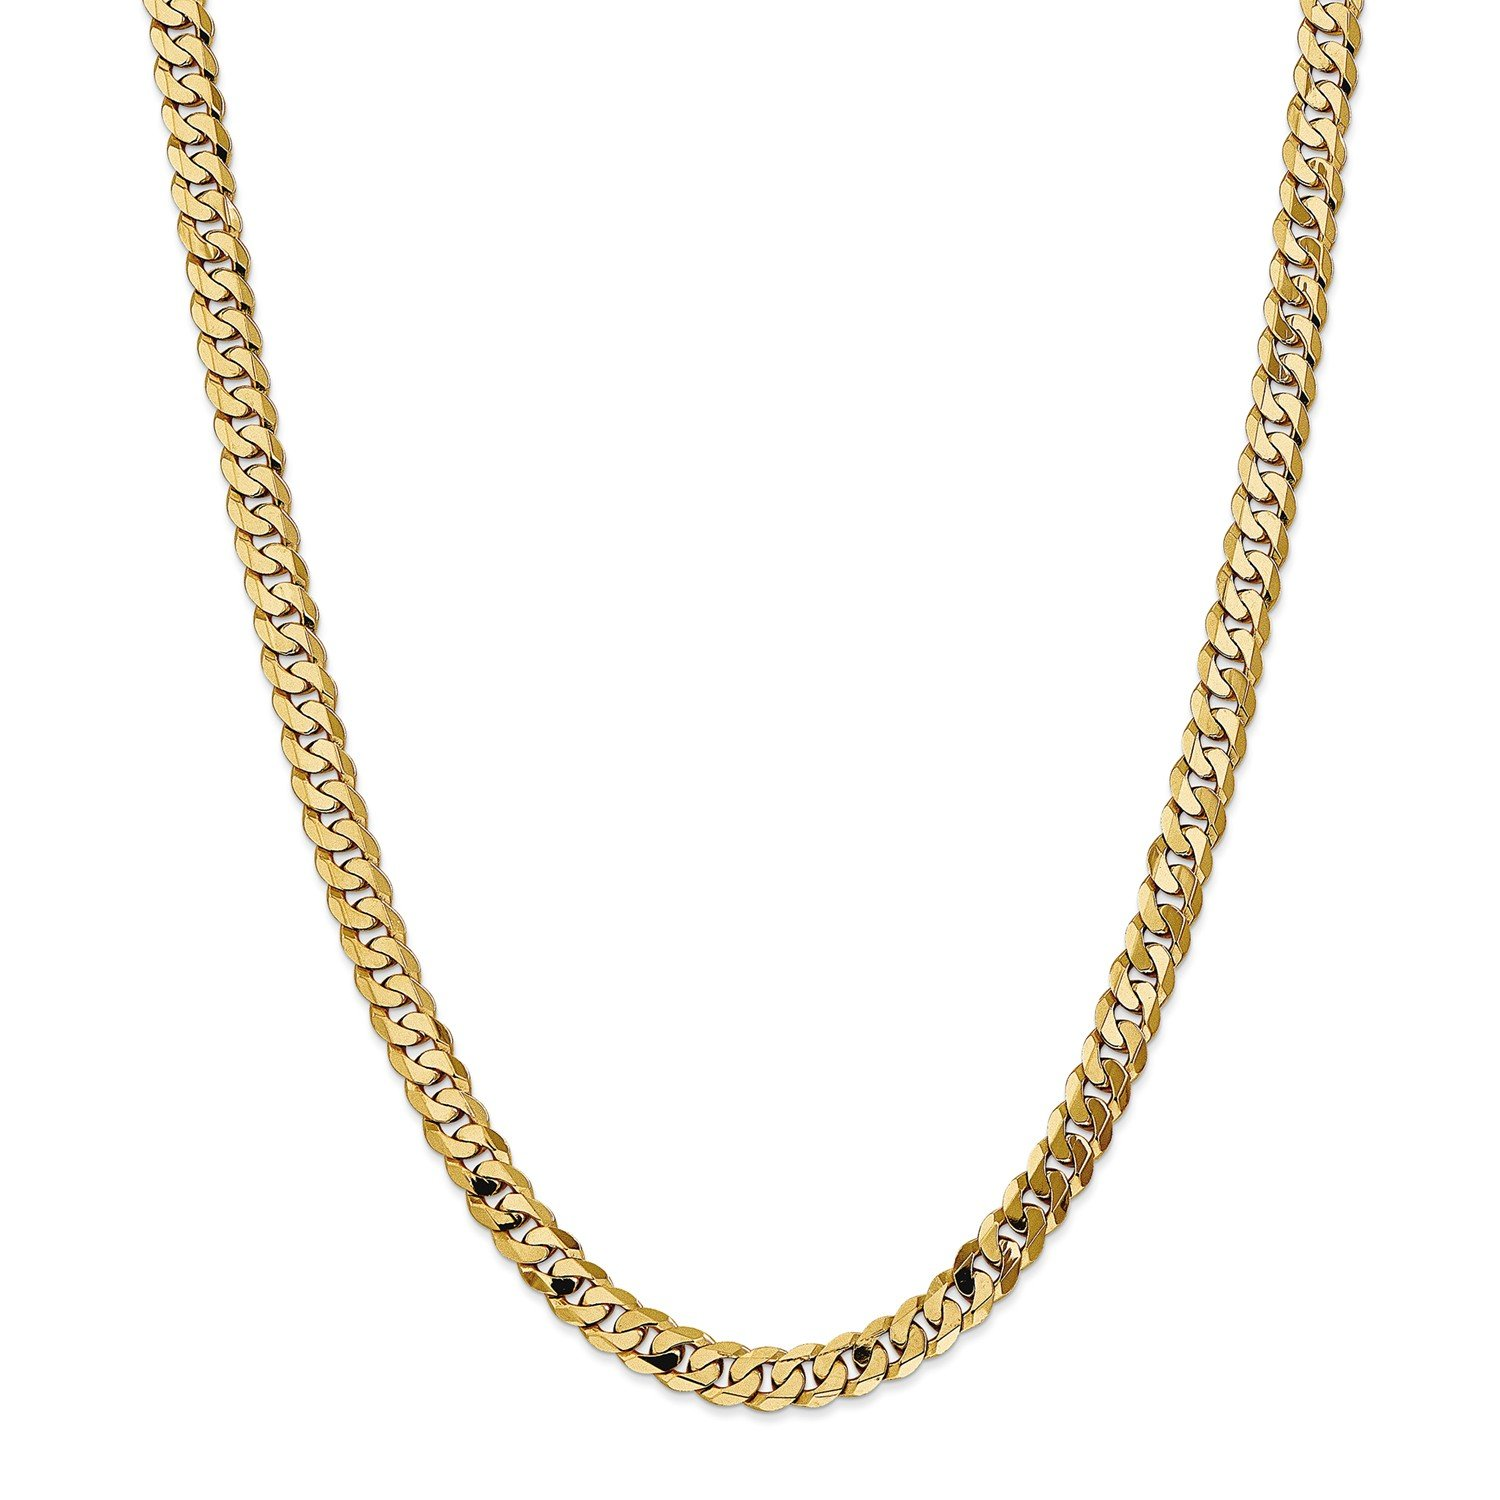 Roy Rose Jewelry 14K Yellow Gold 7.25mm Beveled Curb Chain Necklace ~ Length 20'' inches